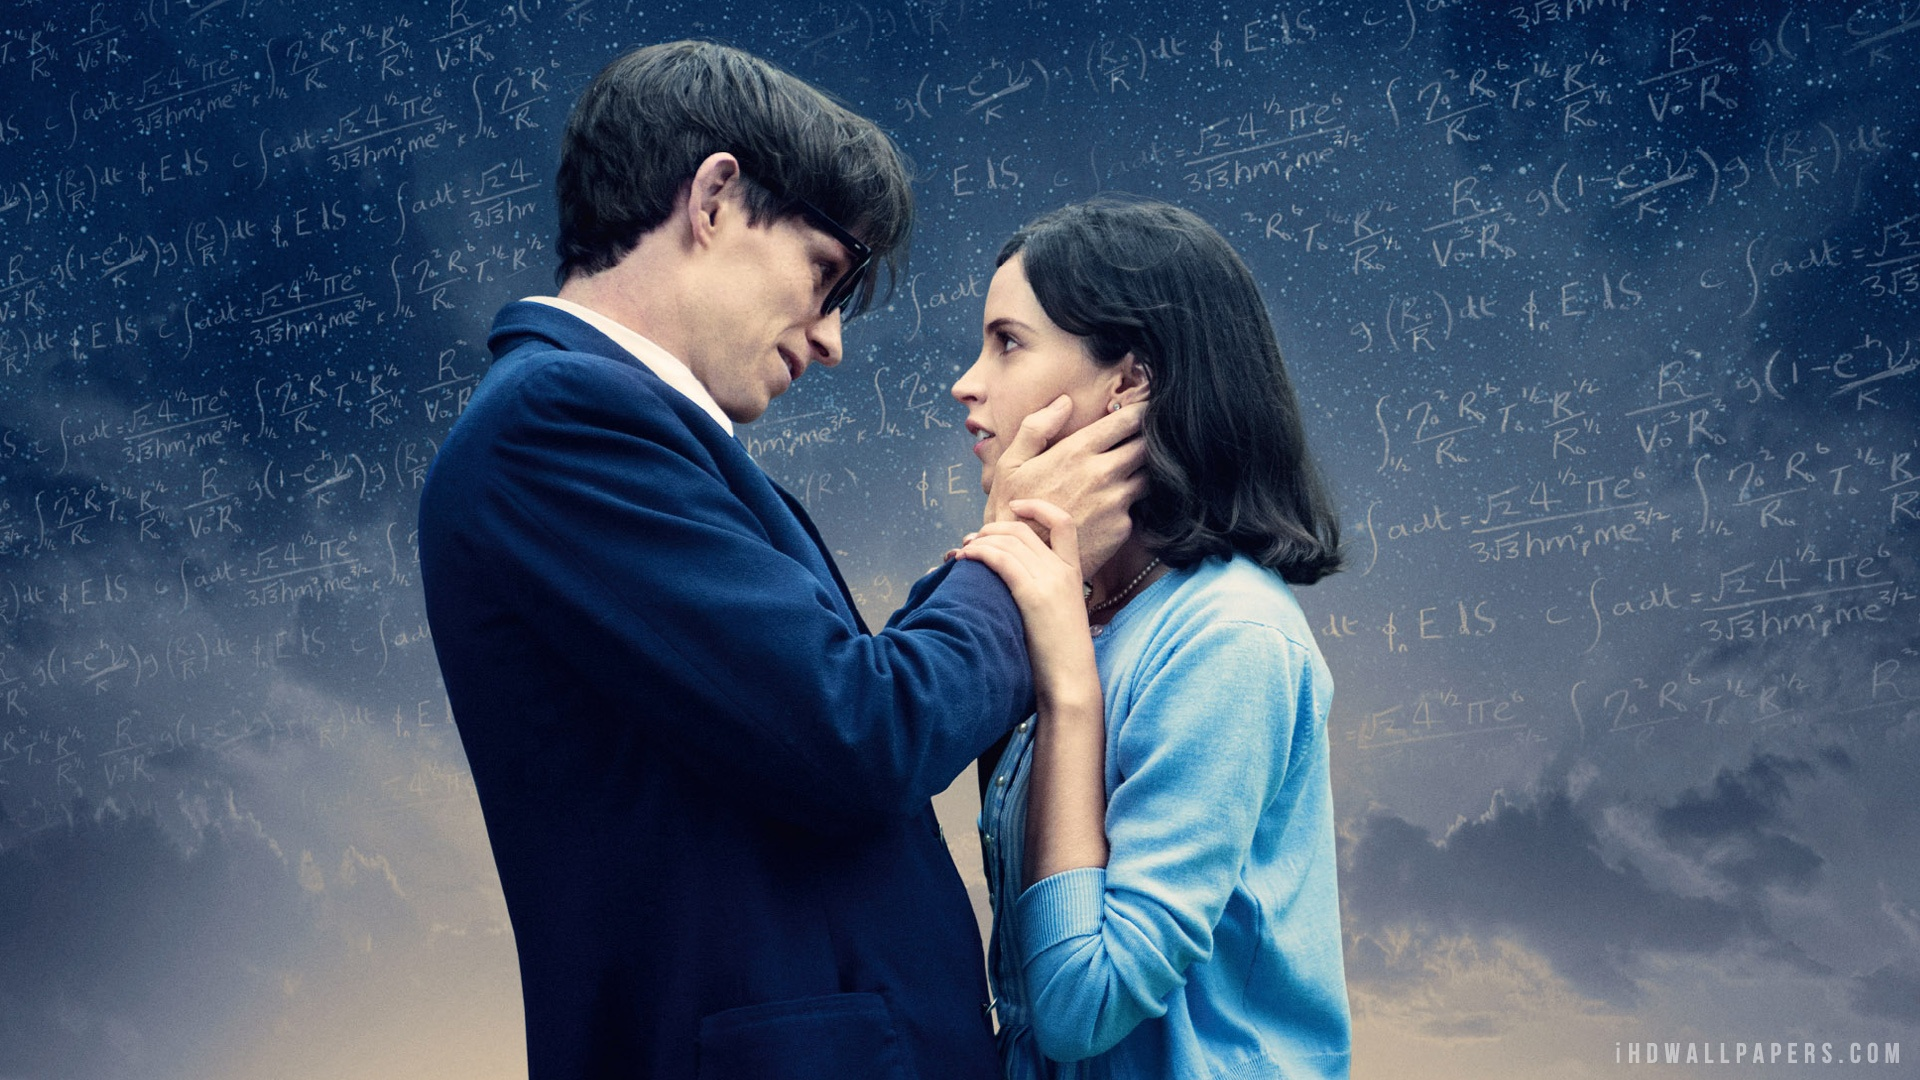 the_theory_of_everything_movie-1920x1080